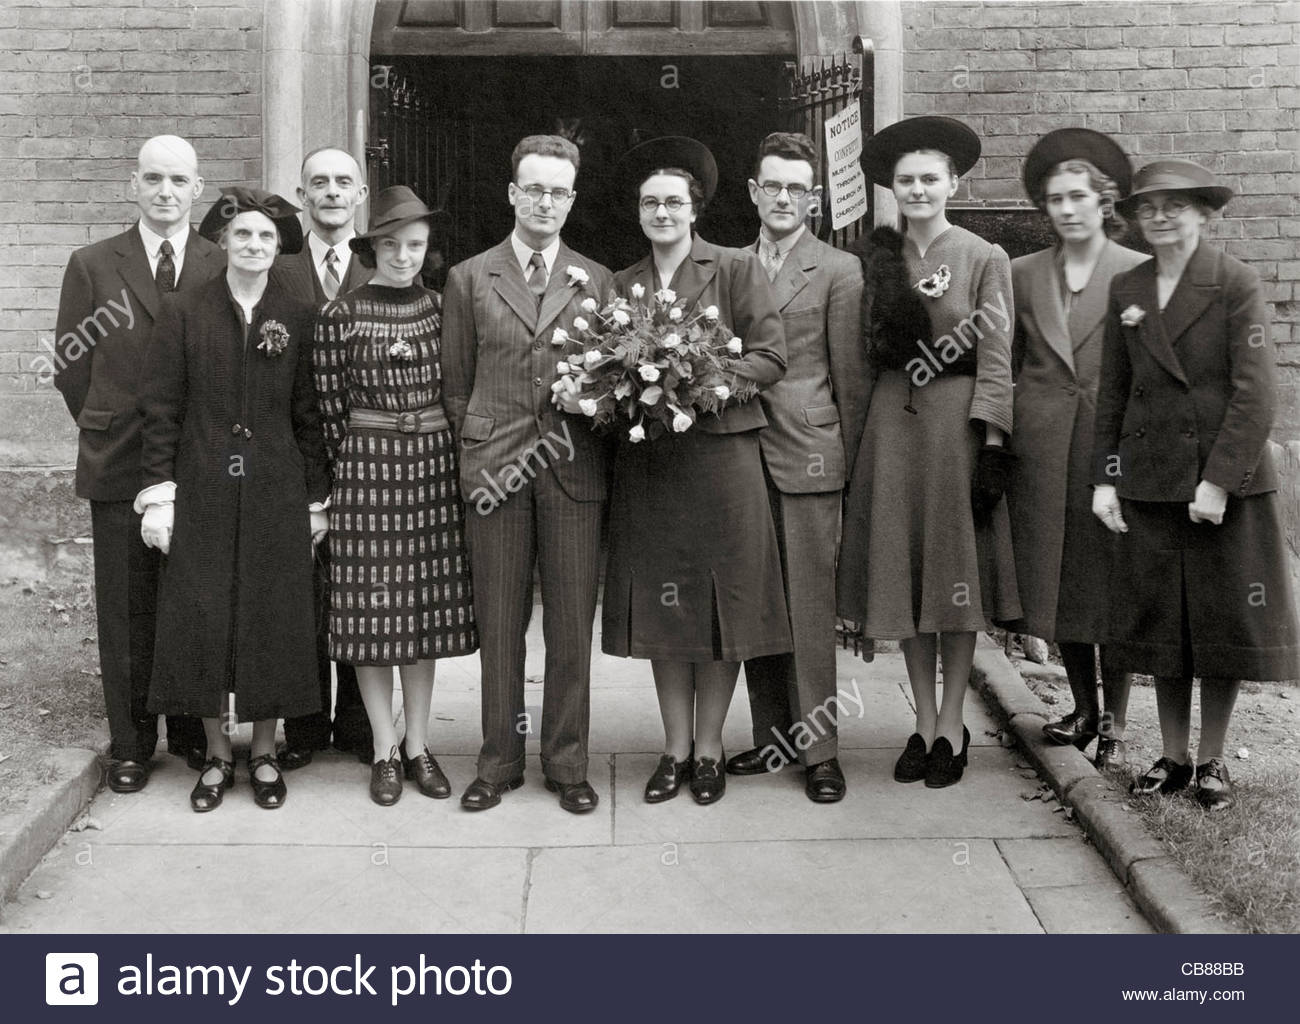 group family wedding photo in front of the church door opening England 1940s - Stock Image